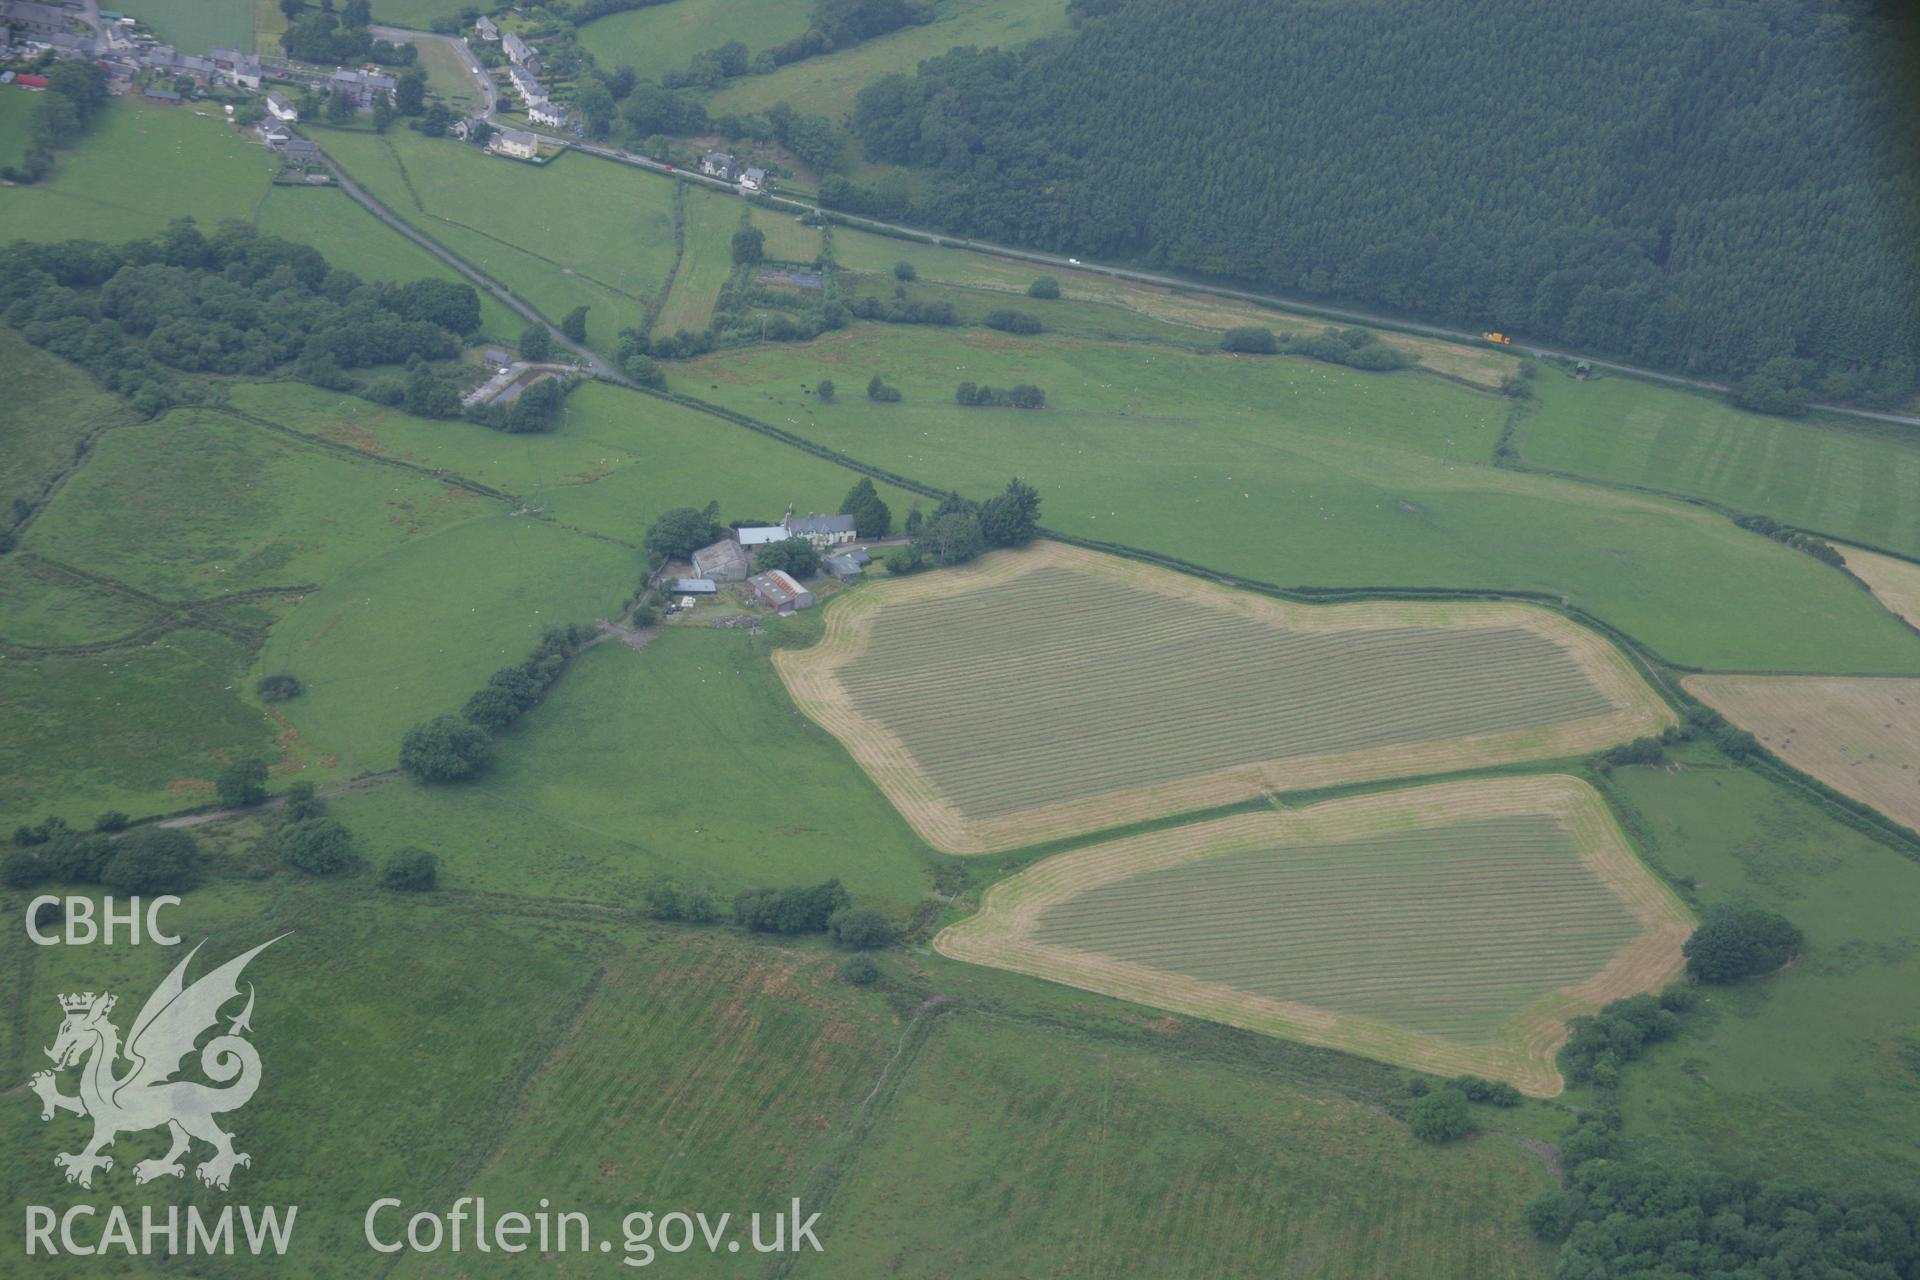 RCAHMW colour oblique aerial photograph of Cefn Caer Roman Fort, Pennal. Taken on 04 July 2006 by Toby Driver.